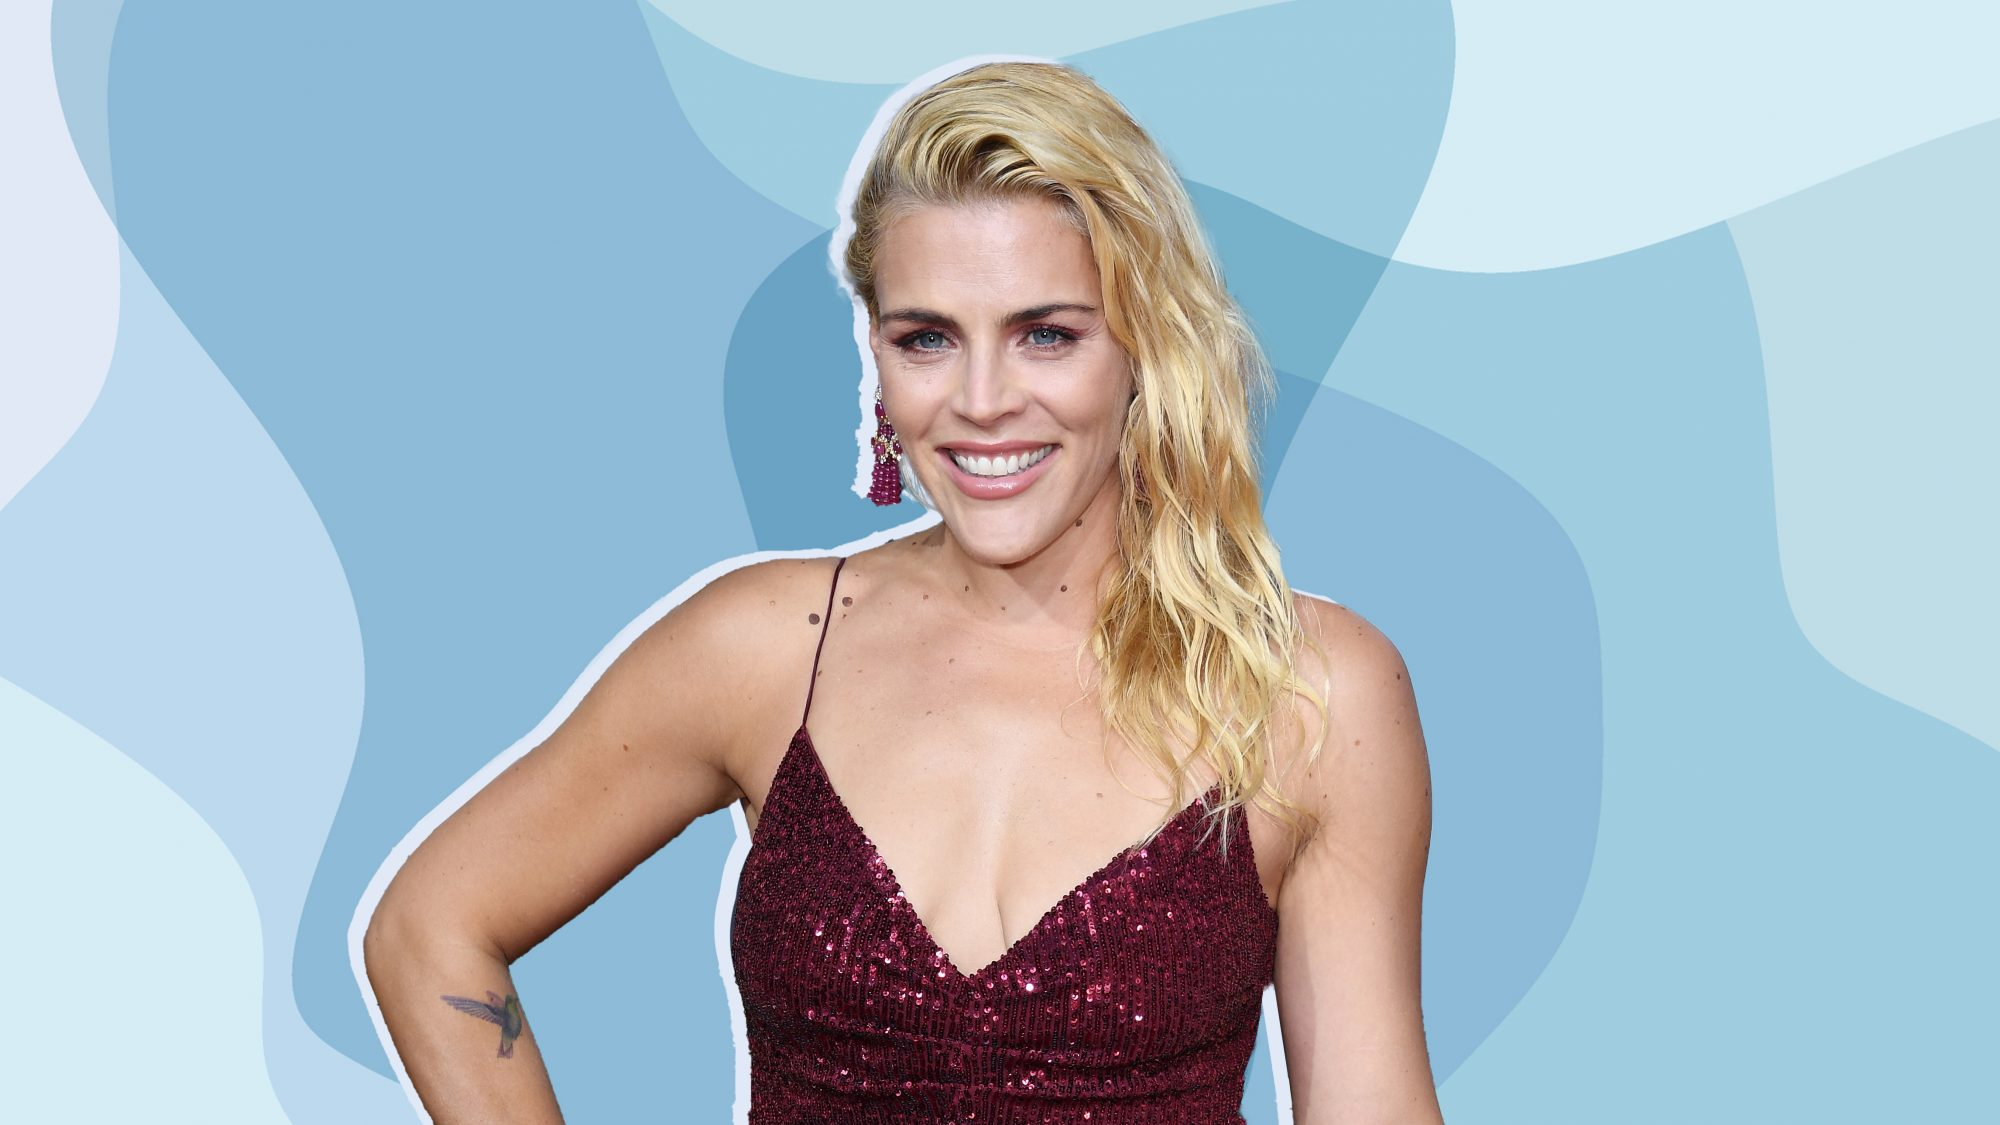 busy-philipps golden-globes boobs breasts boob-sweat megababe